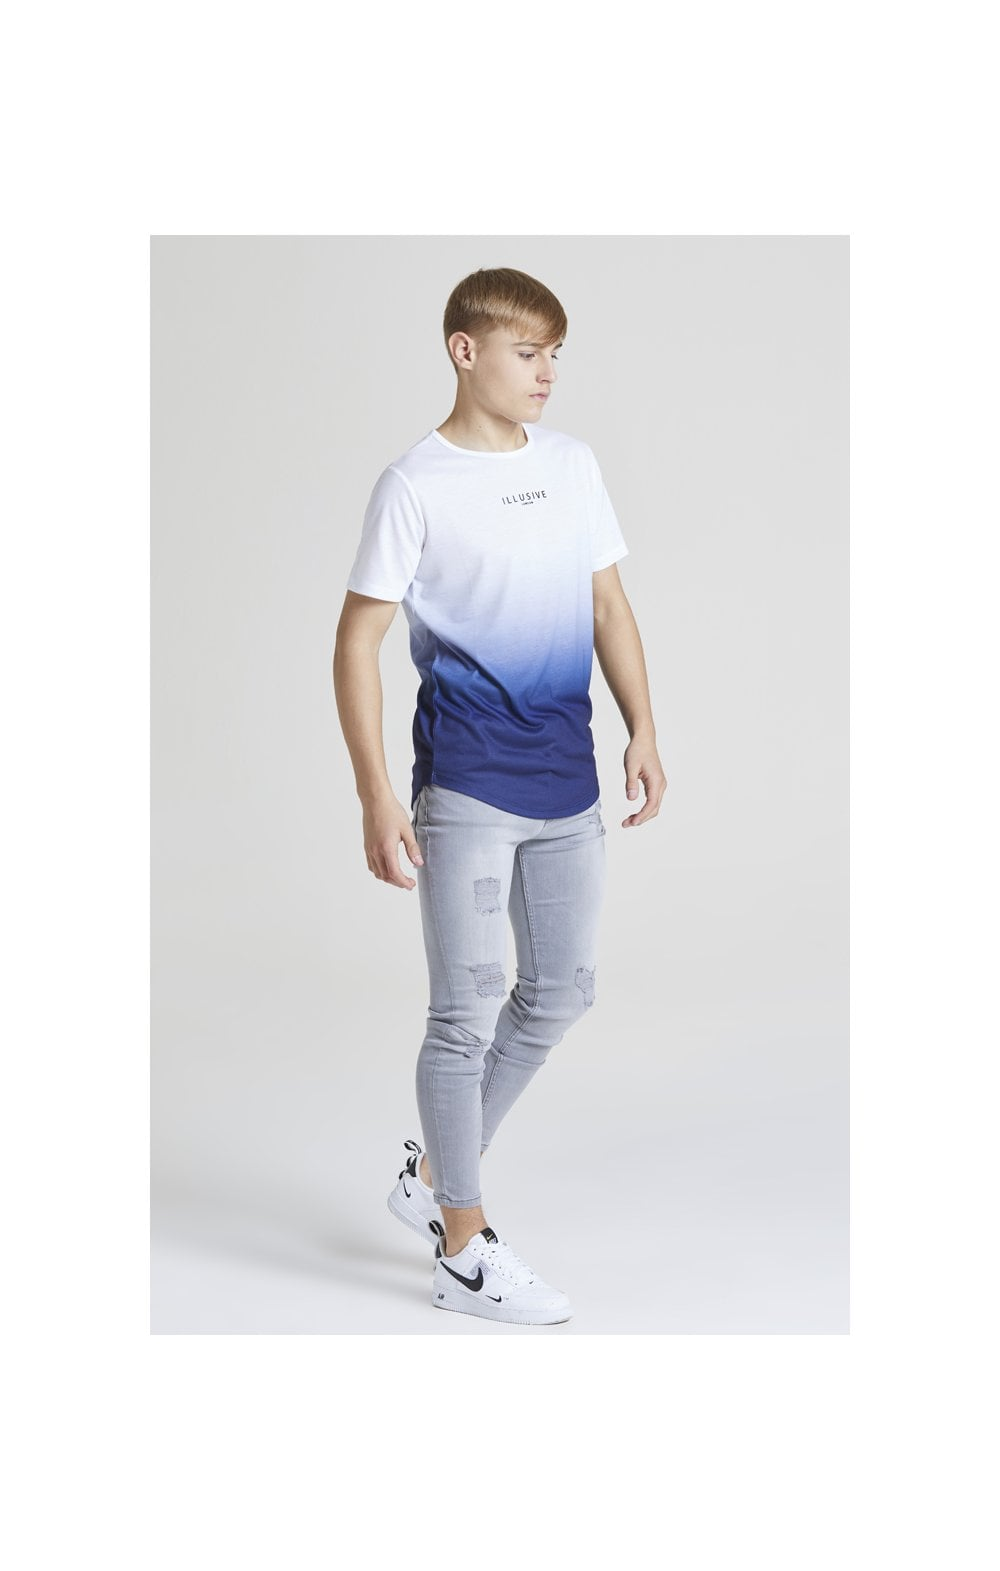 Load image into Gallery viewer, Illusive London Core Fade Tee – White & Navy (2)